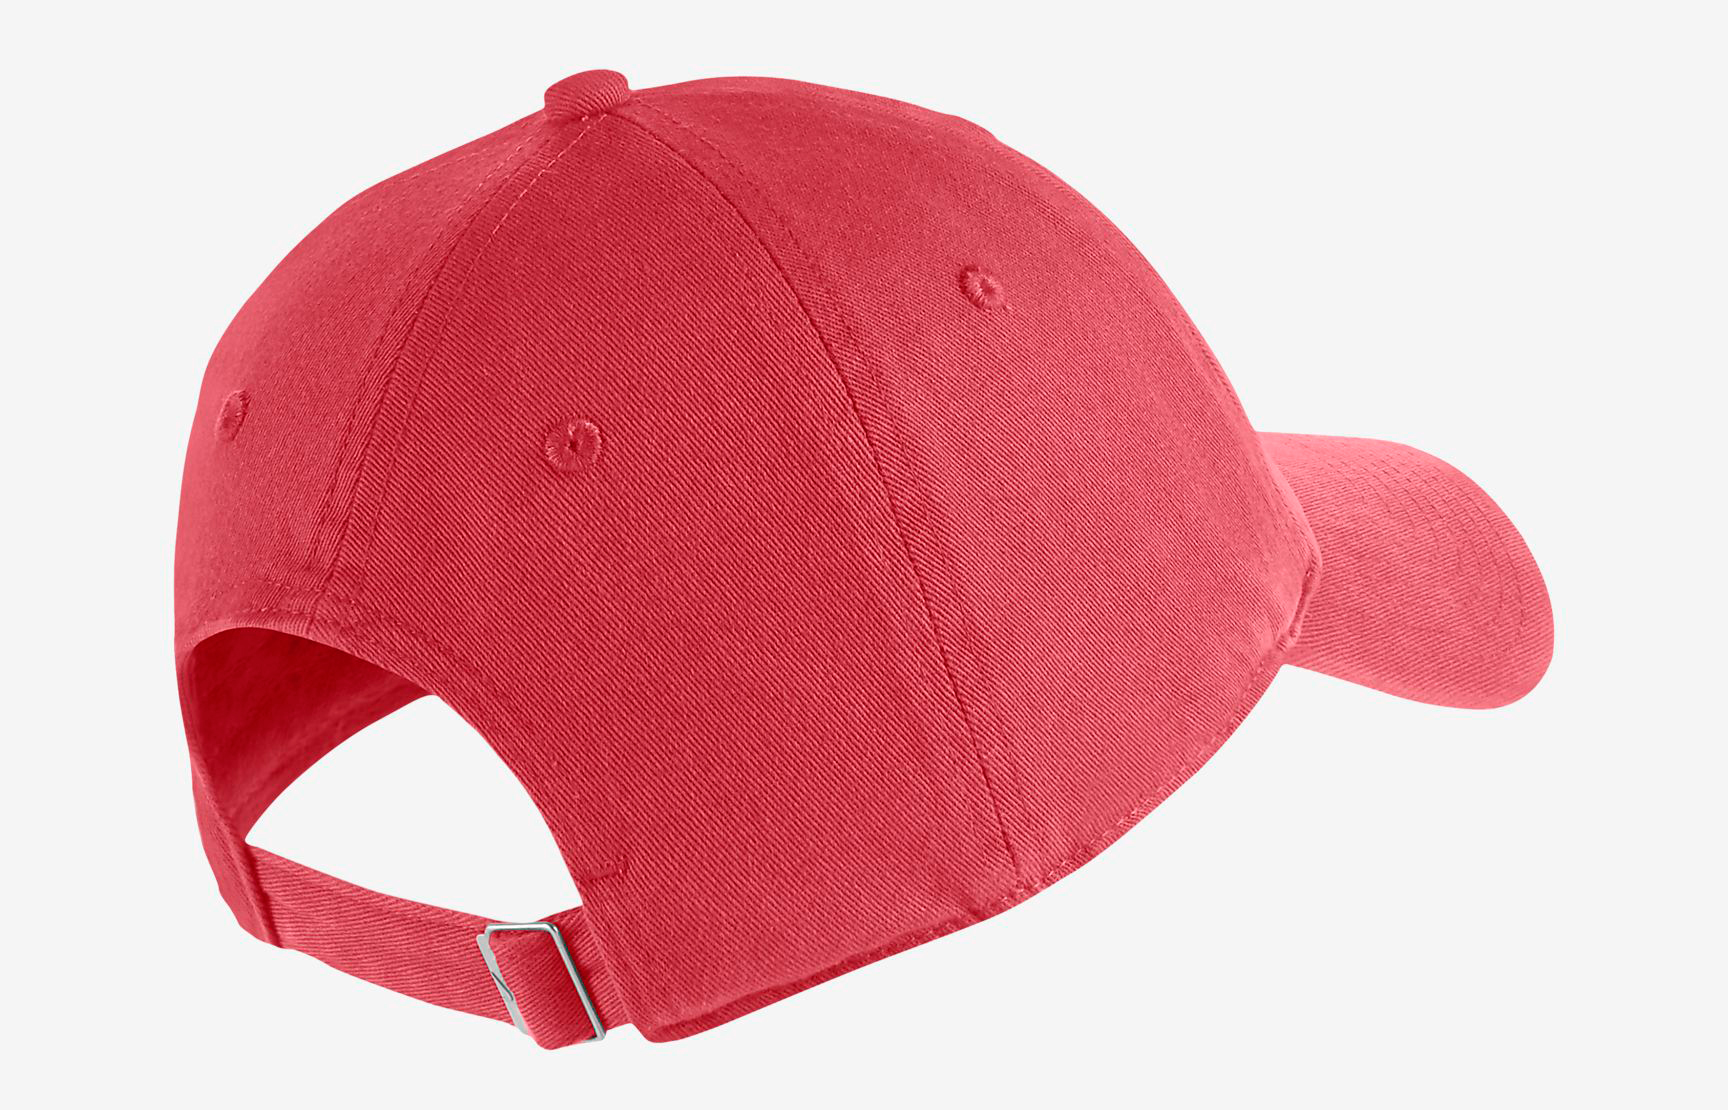 nike watermelon south beach hat match red 2